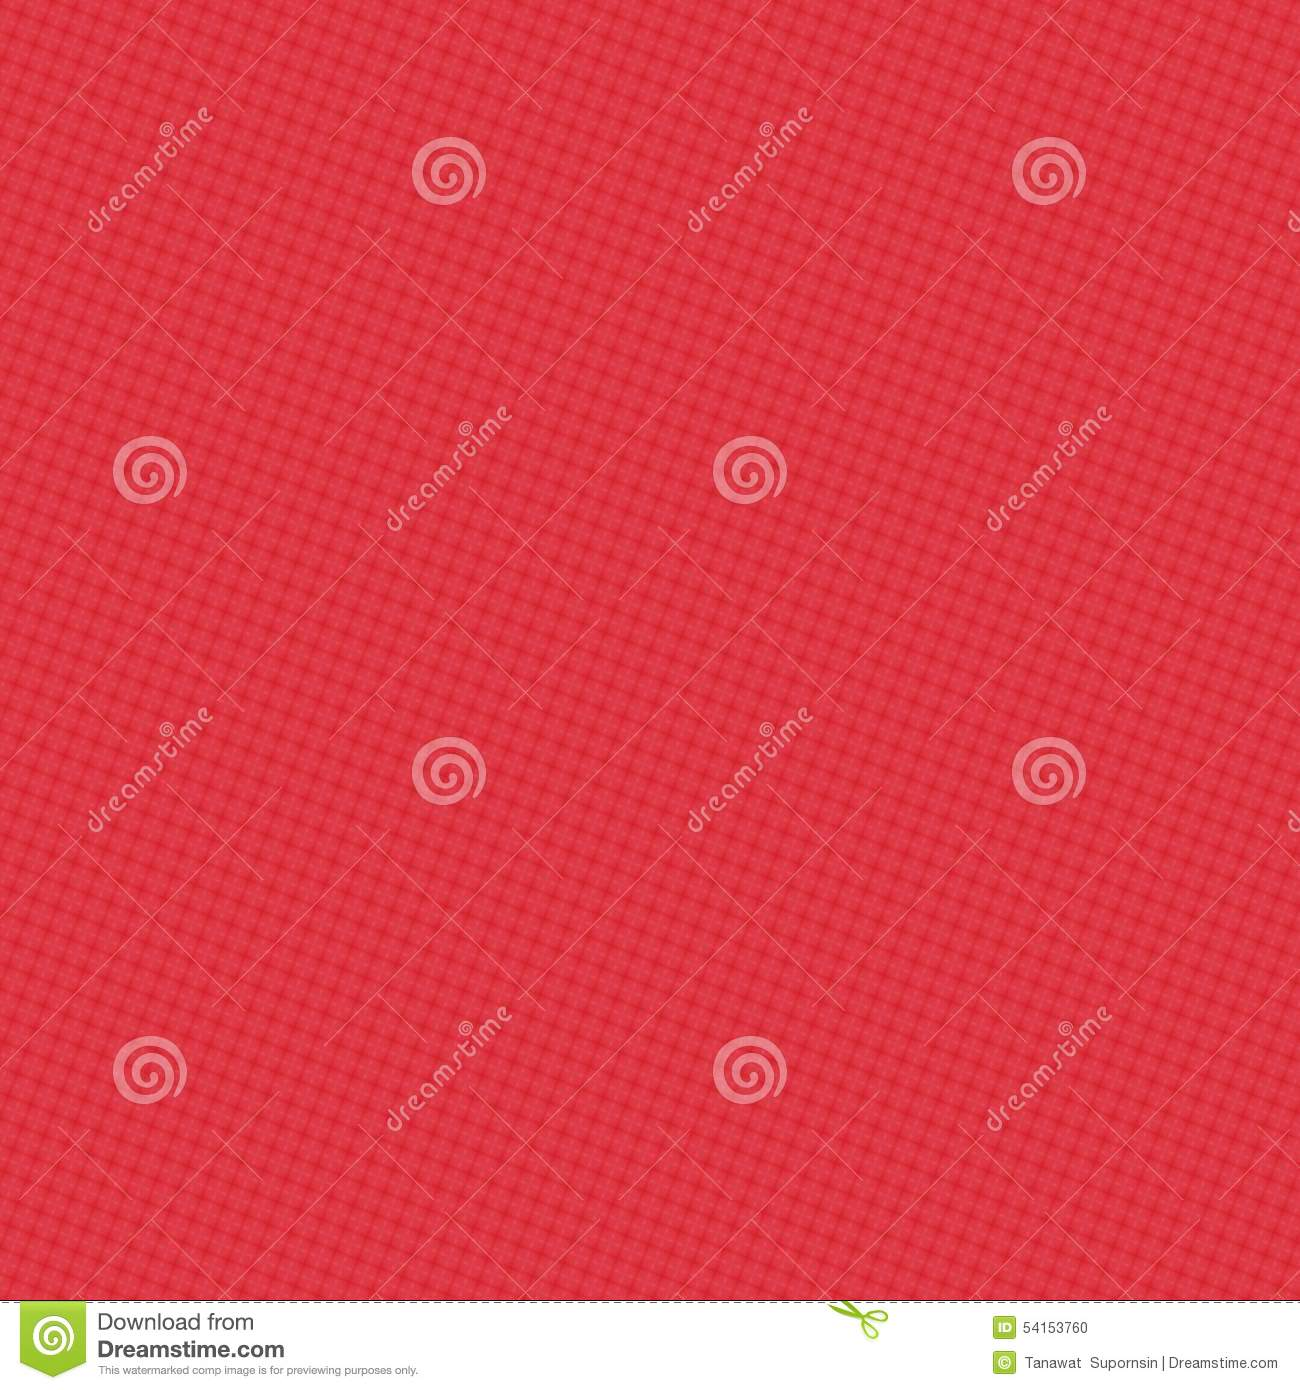 Abstract Flower Red And White Color Wallpaper